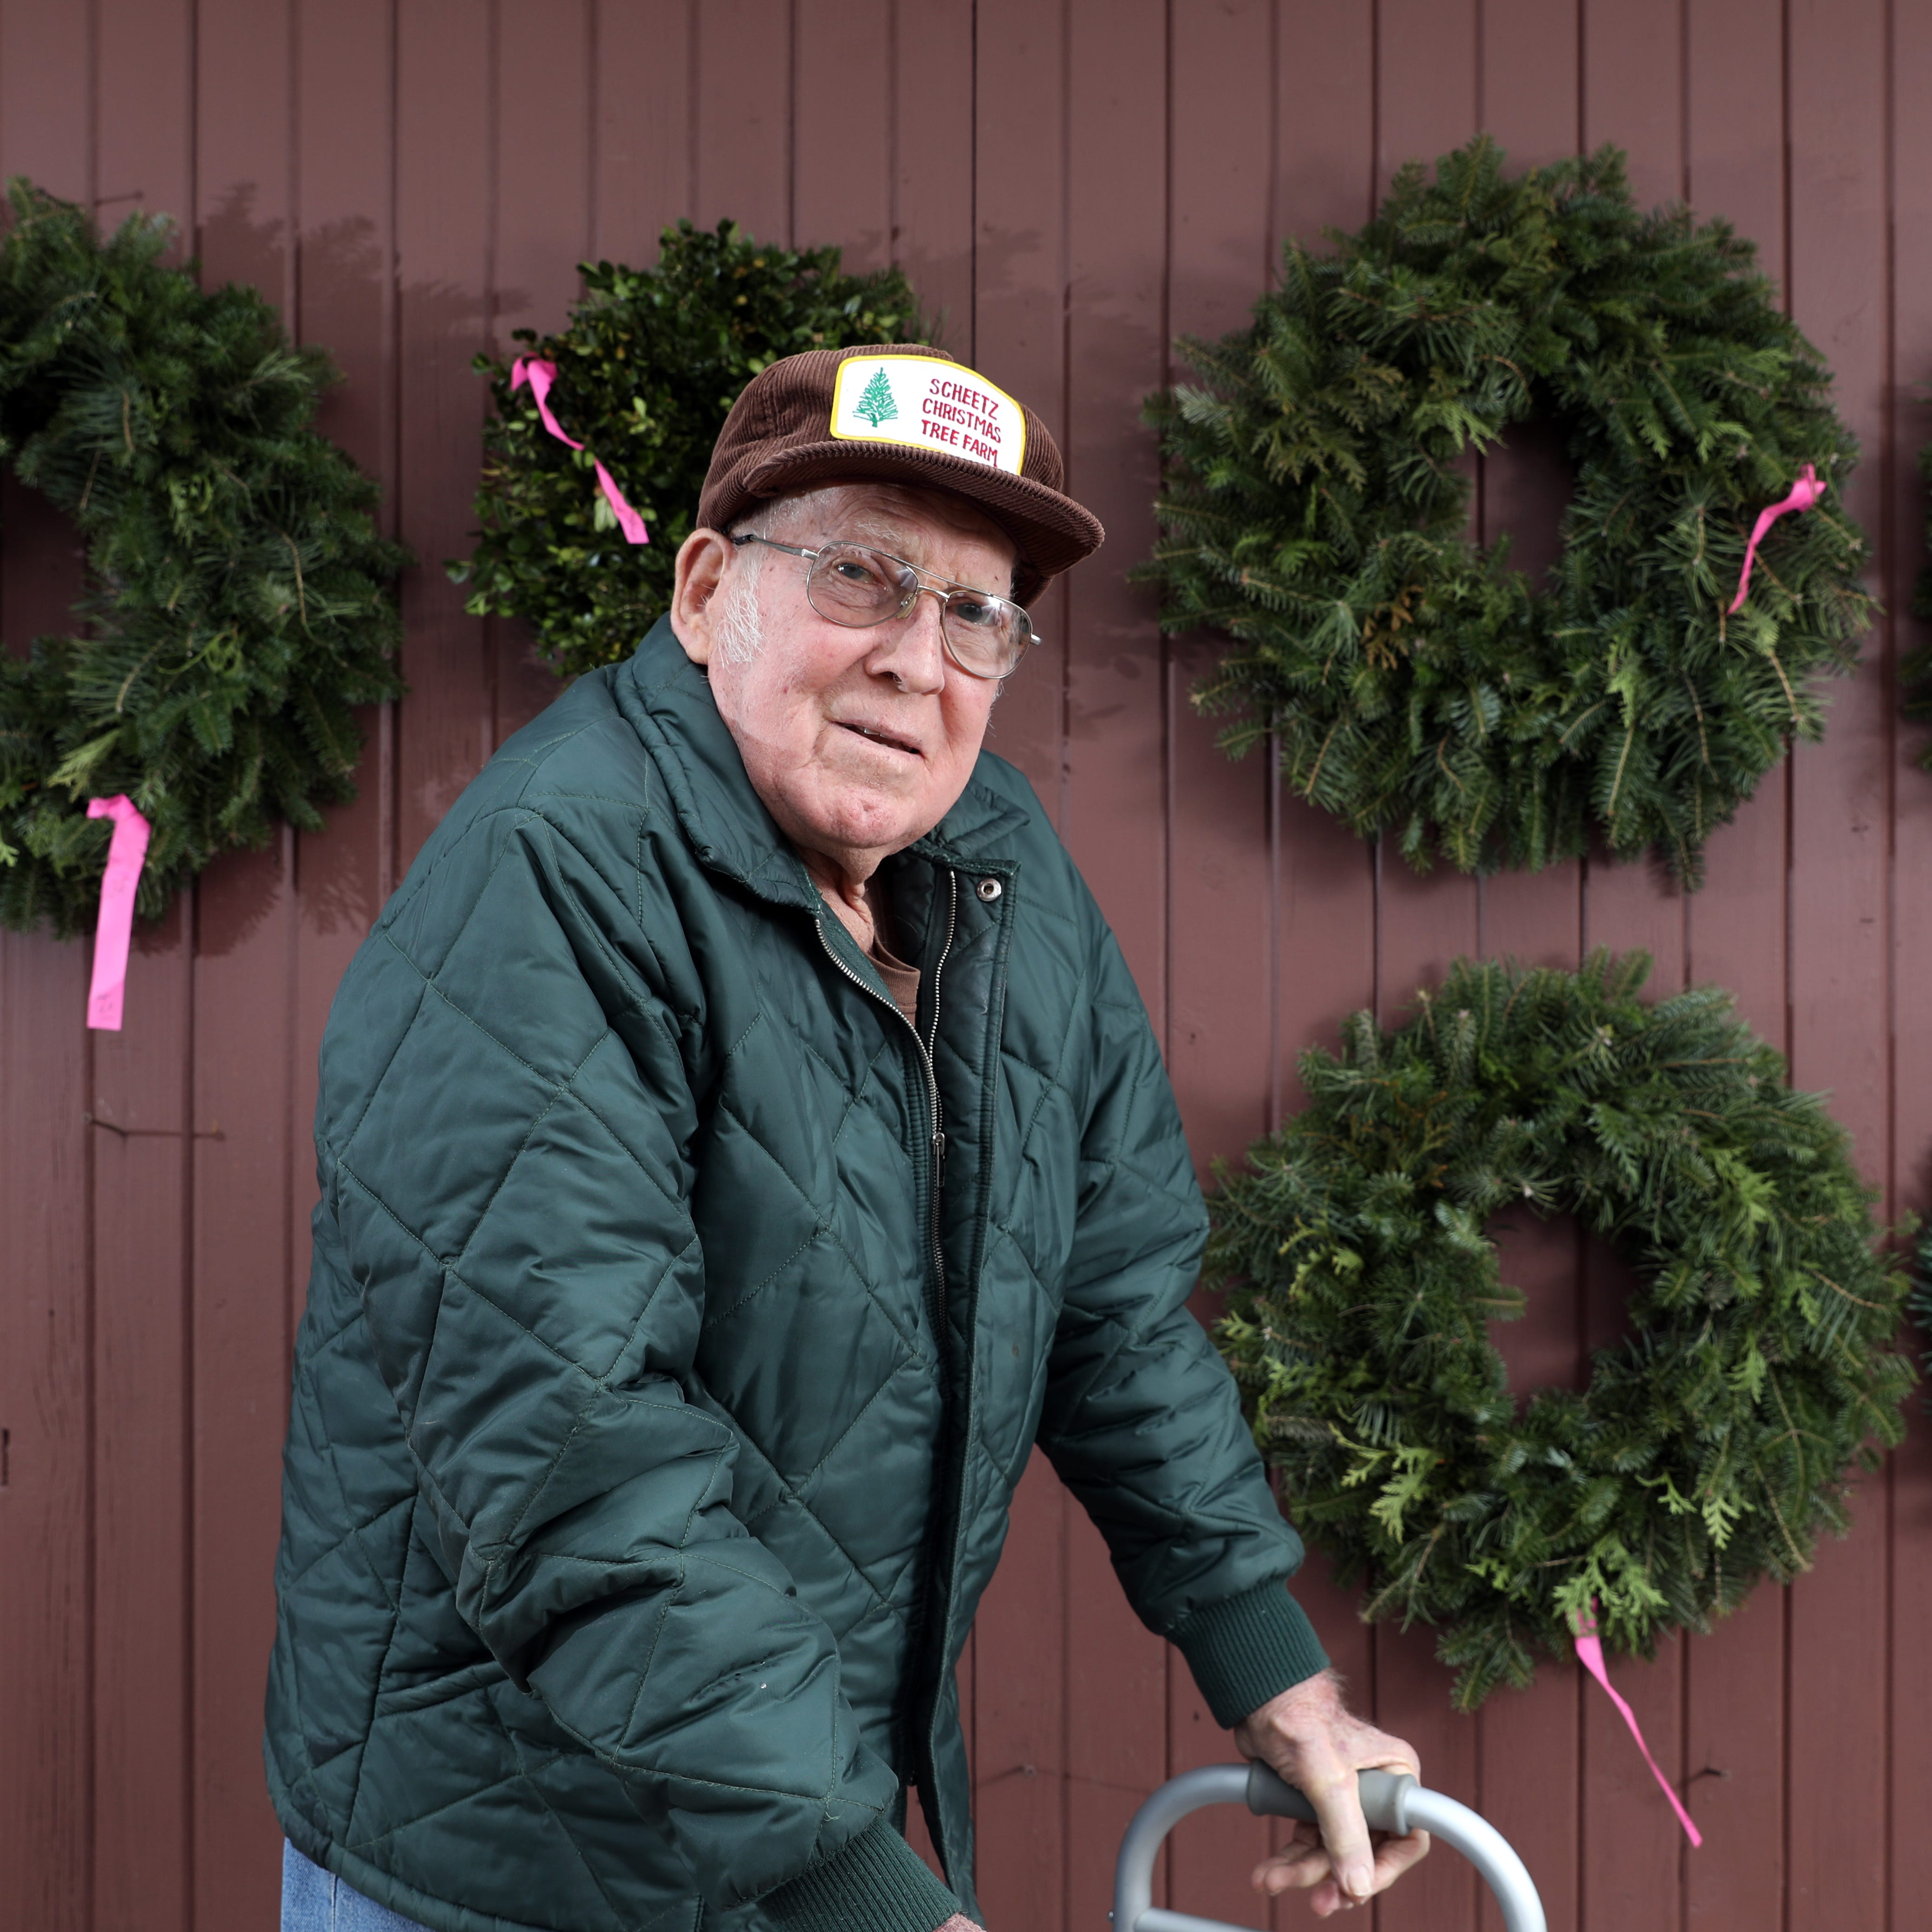 Farming comes full circle for Kenneth Scheetz